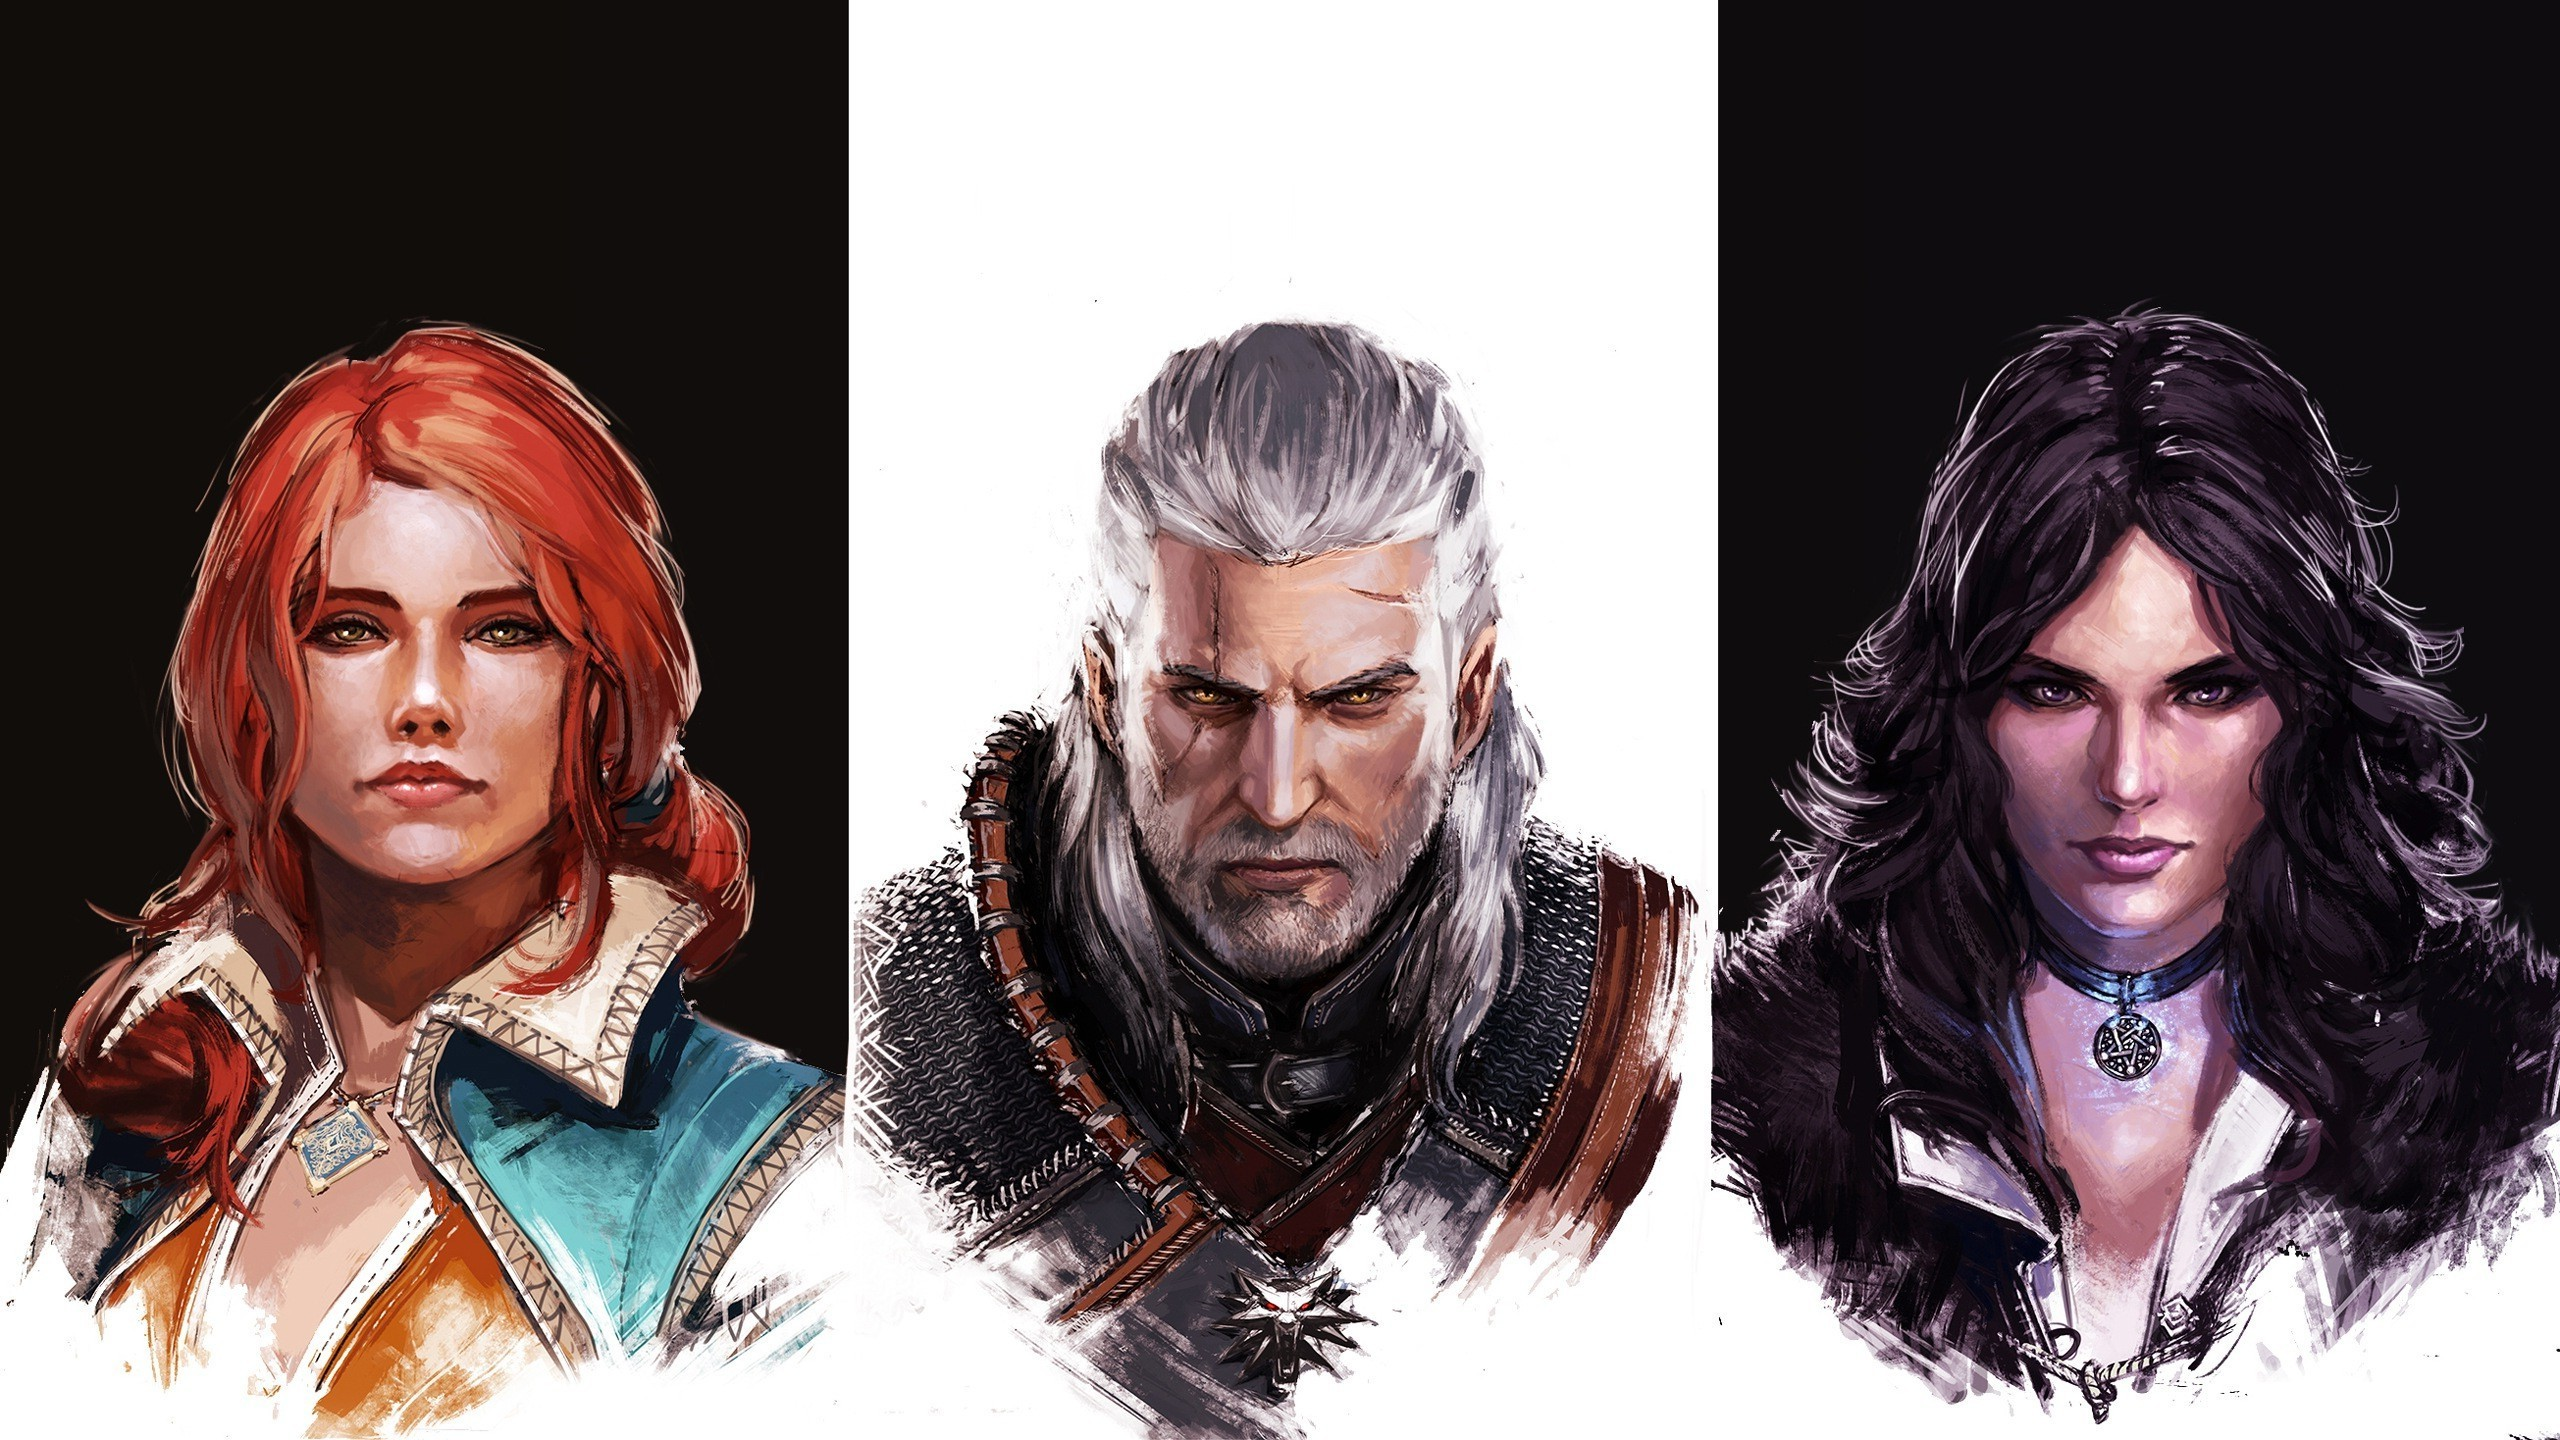 The Witcher, Triss Merigold, Geralt Of Rivia, Yennefer Of Vengerberg, The  Witcher 3: Wild Hunt, Video Games Wallpapers HD / Desktop and Mobile  Backgrounds